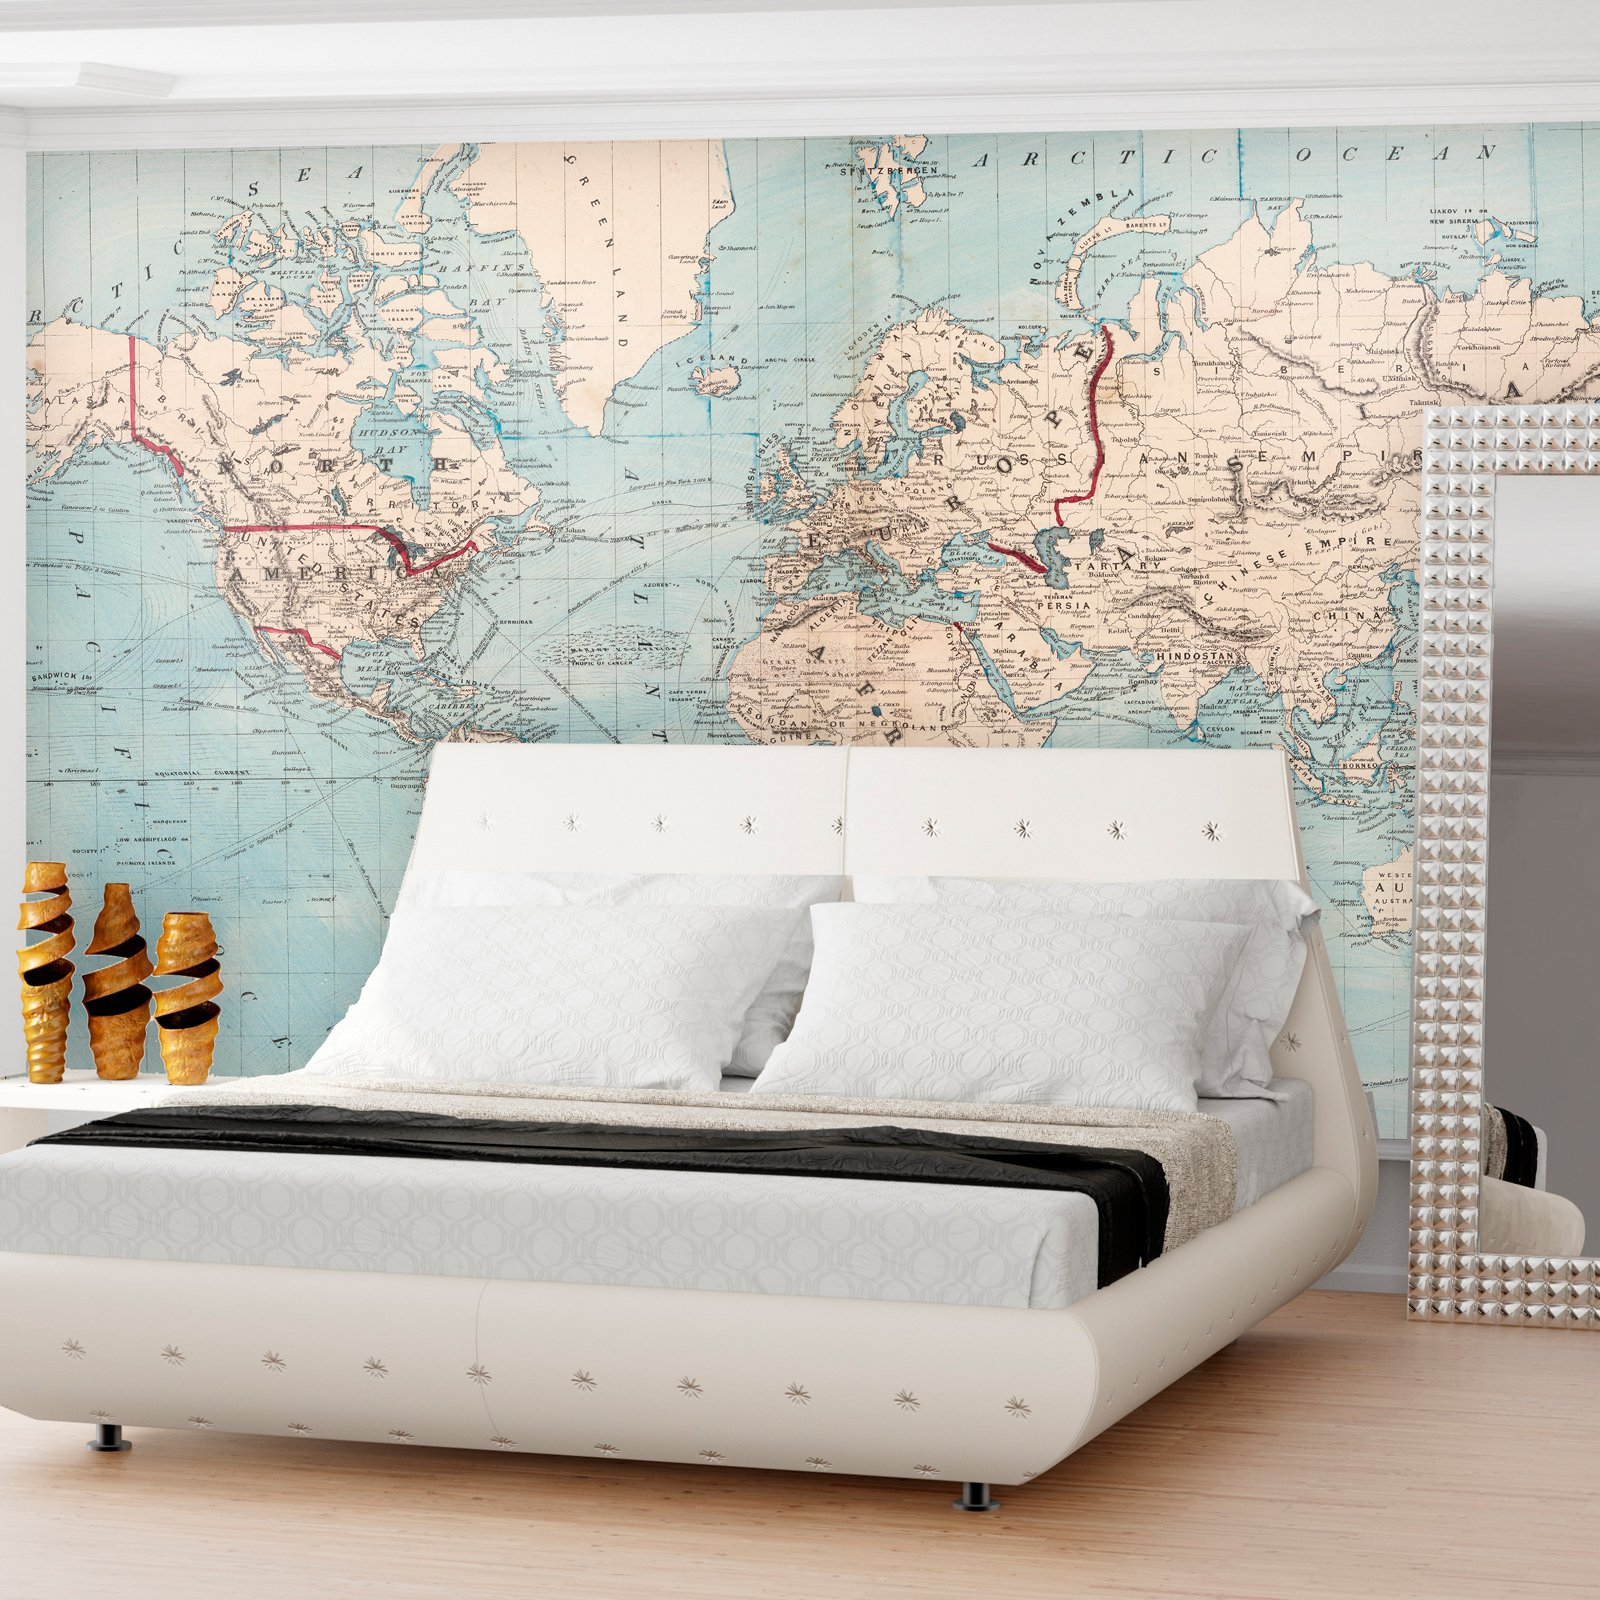 Swag Paper World Map 1876 Shipping Routes Self Adhesive Wallpaper